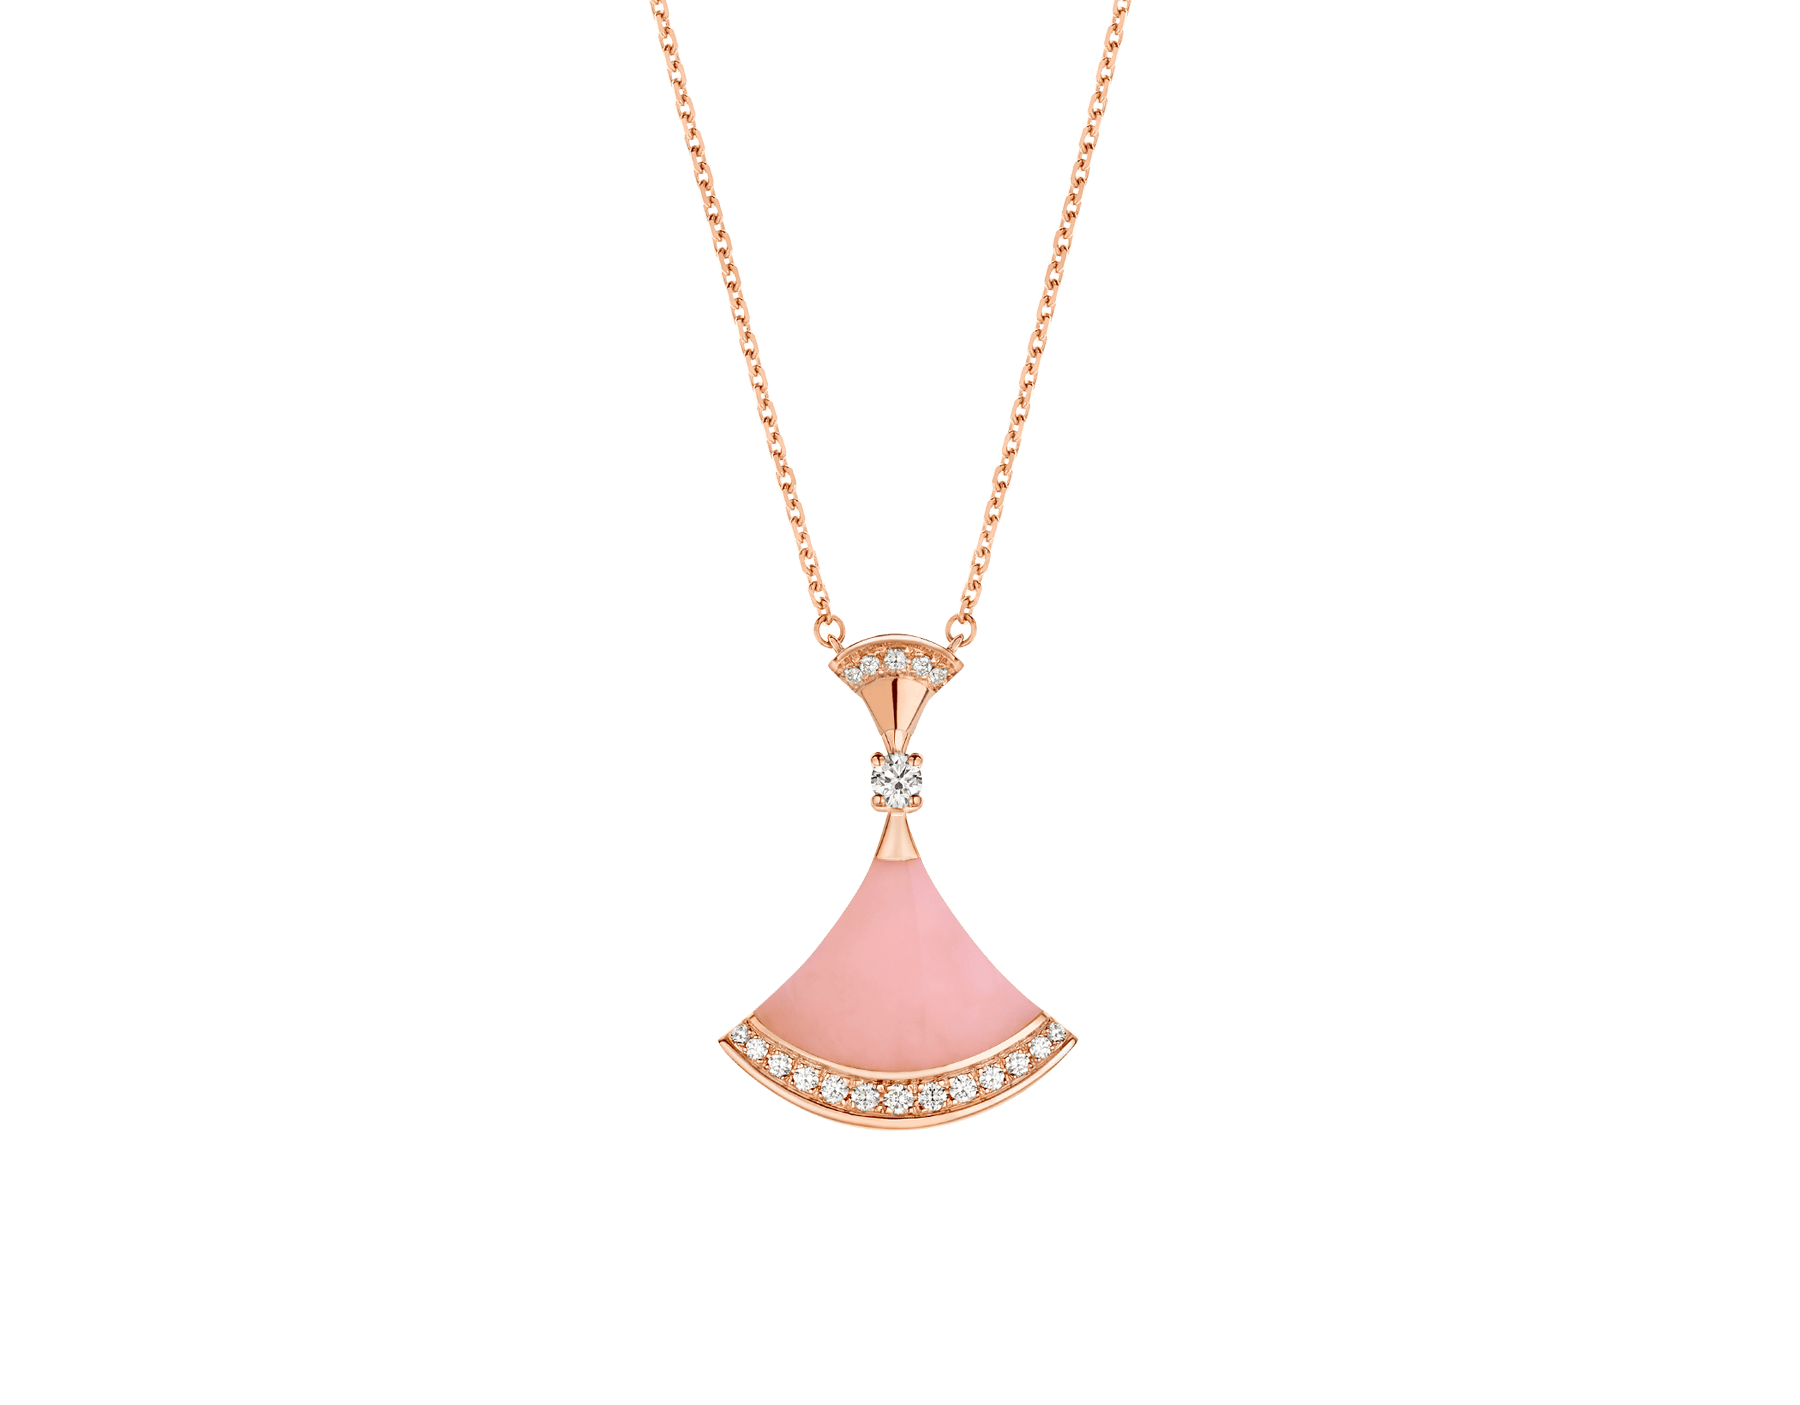 DIVAS' DREAM necklace in 18 kt rose gold, with pendant set with pink opal, a diamond (0.10 ct) and pavé diamonds (0.20 ct). 354340 image 2